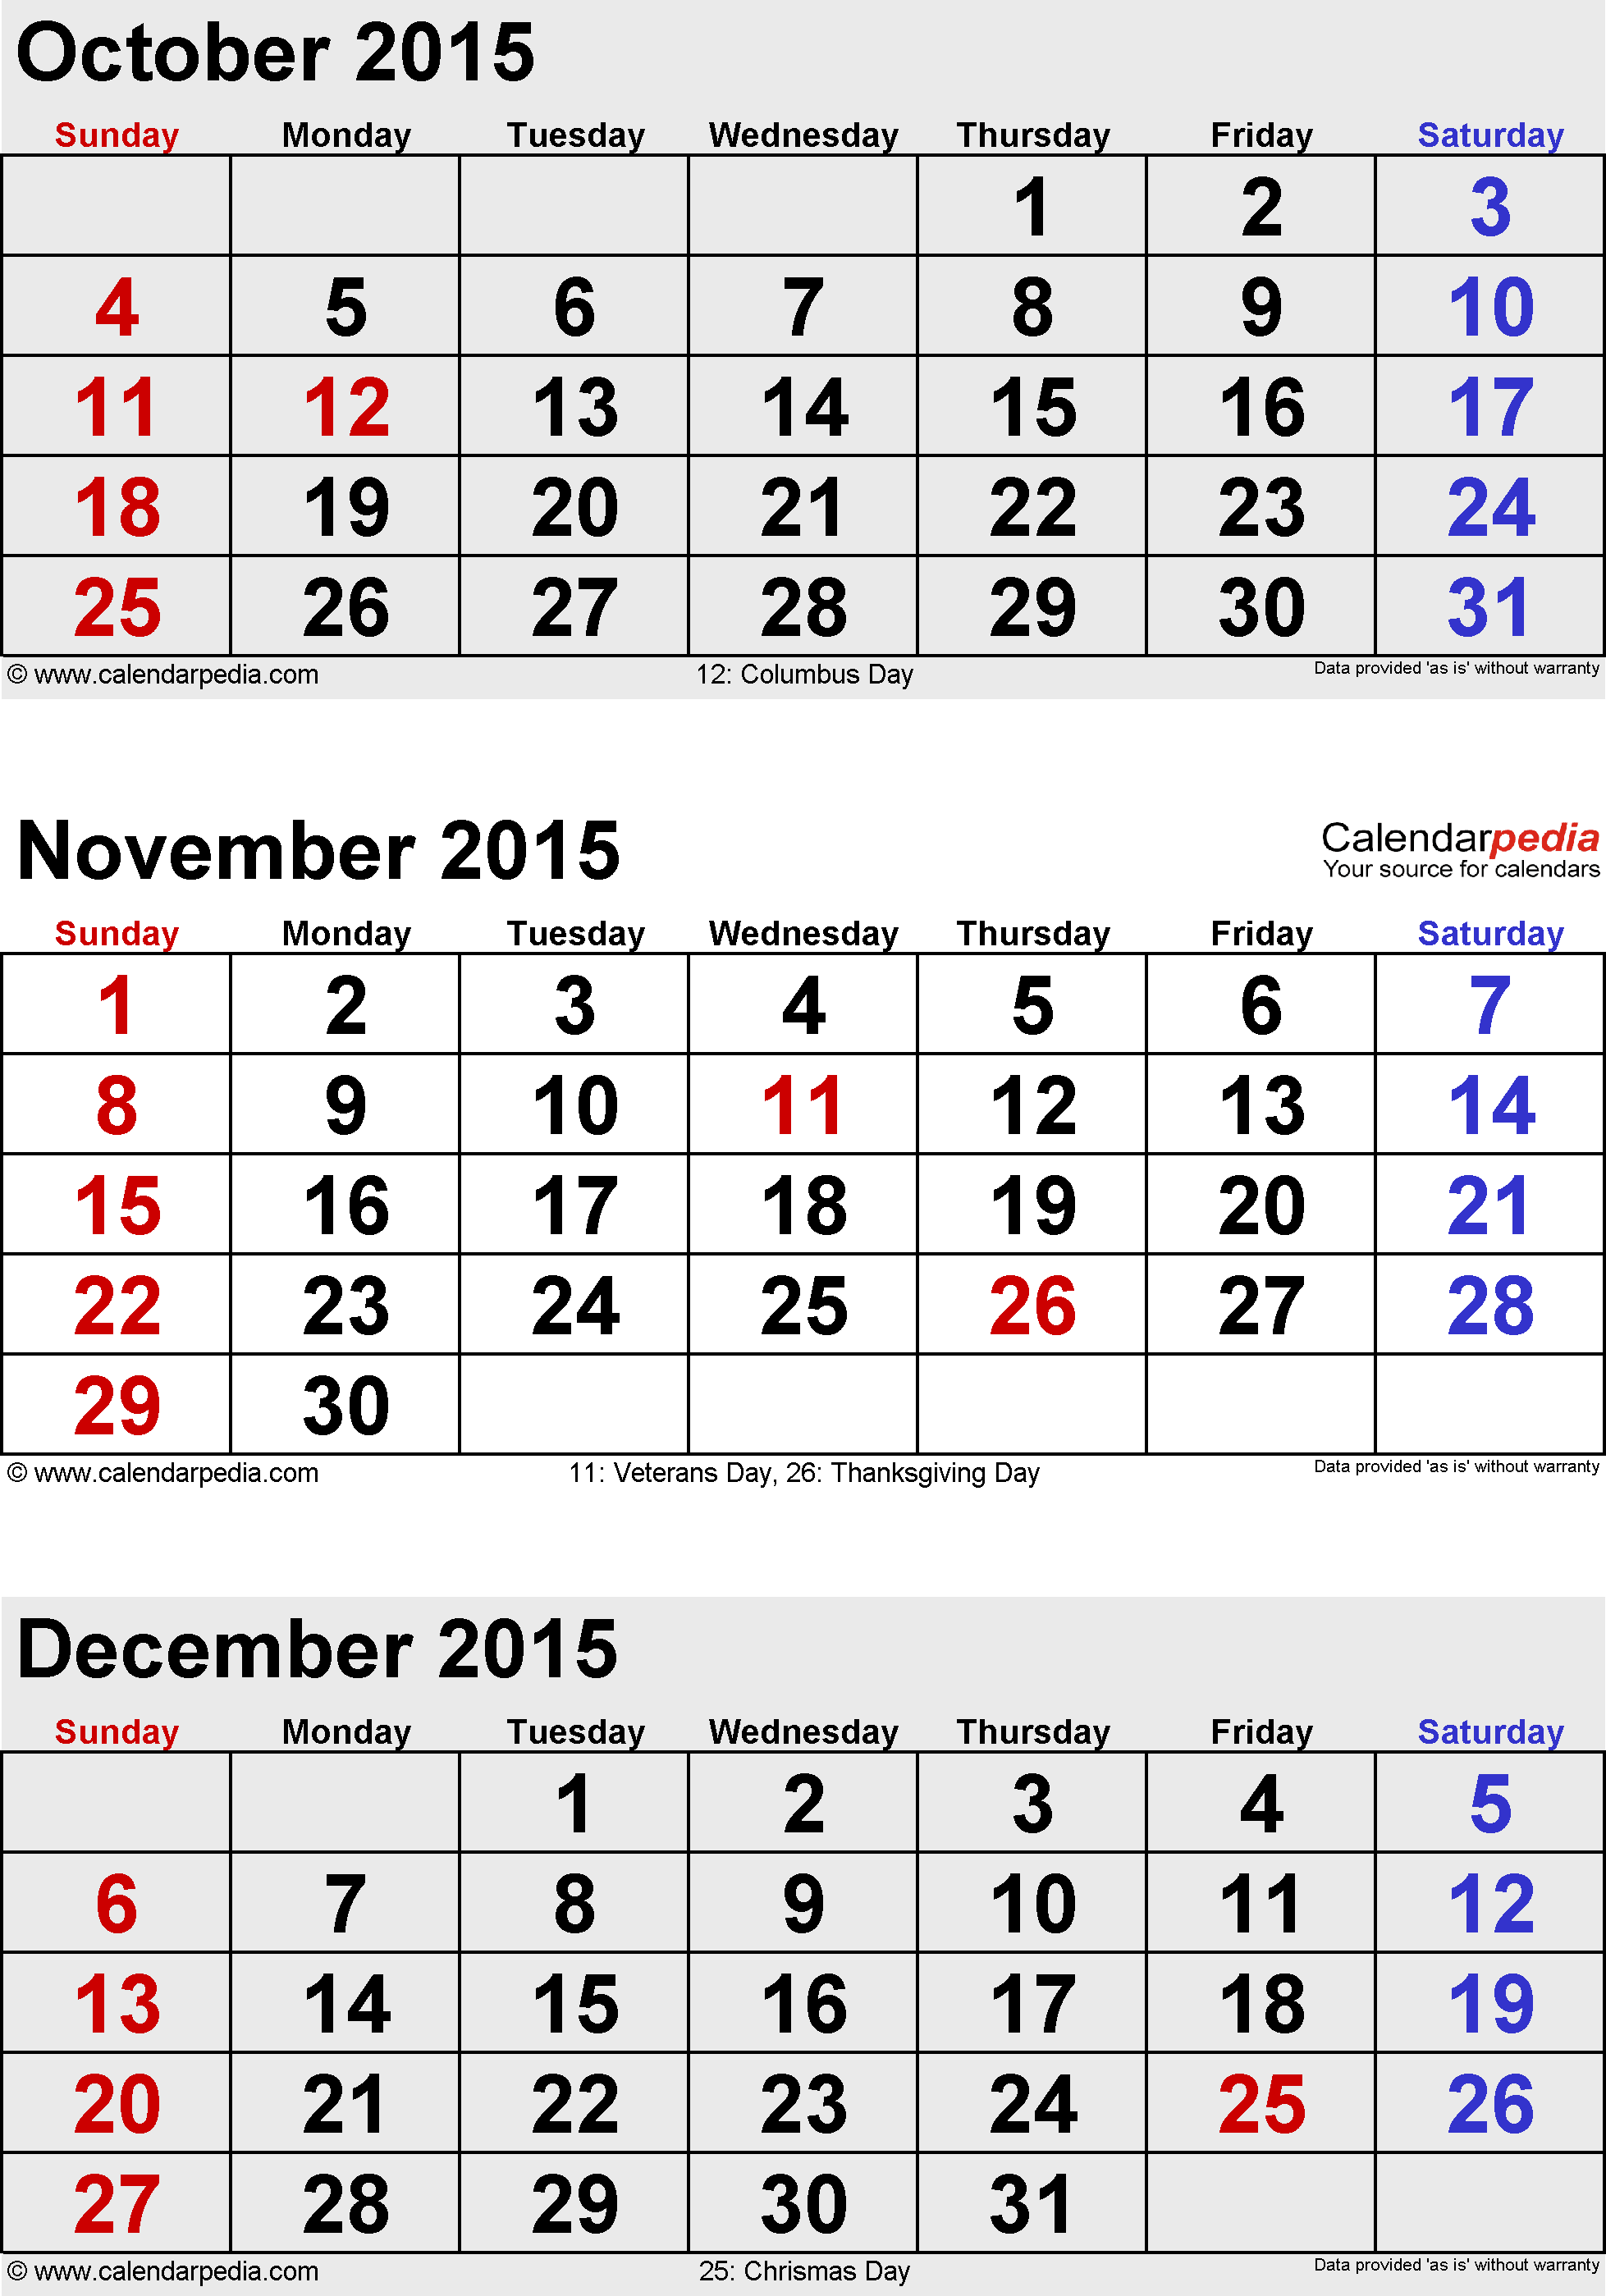 December 2015 Calendars for Word, Excel & PDF